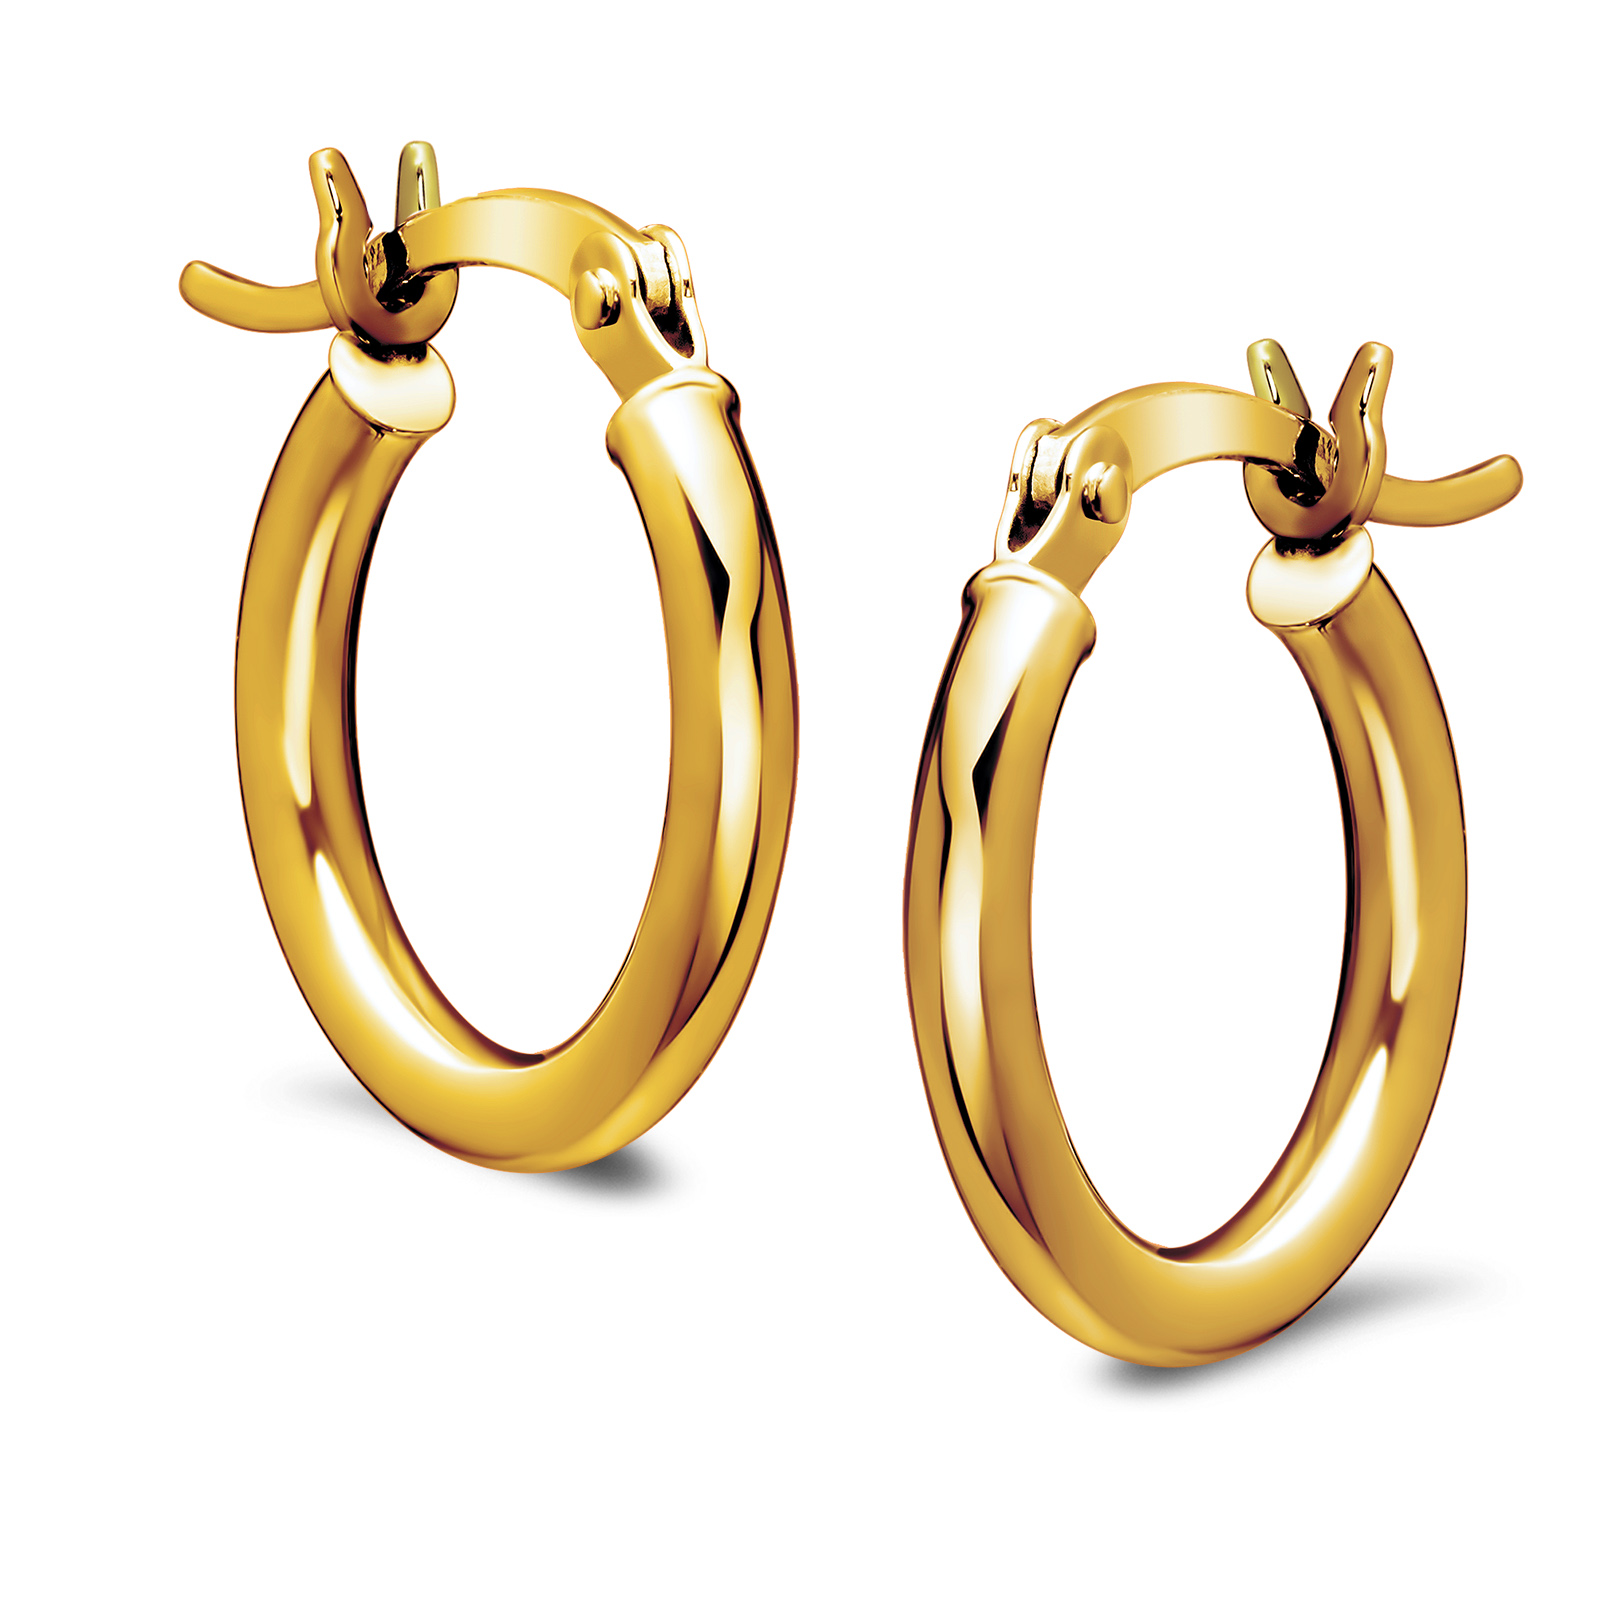 14k Gold Polished Hoop Earrings